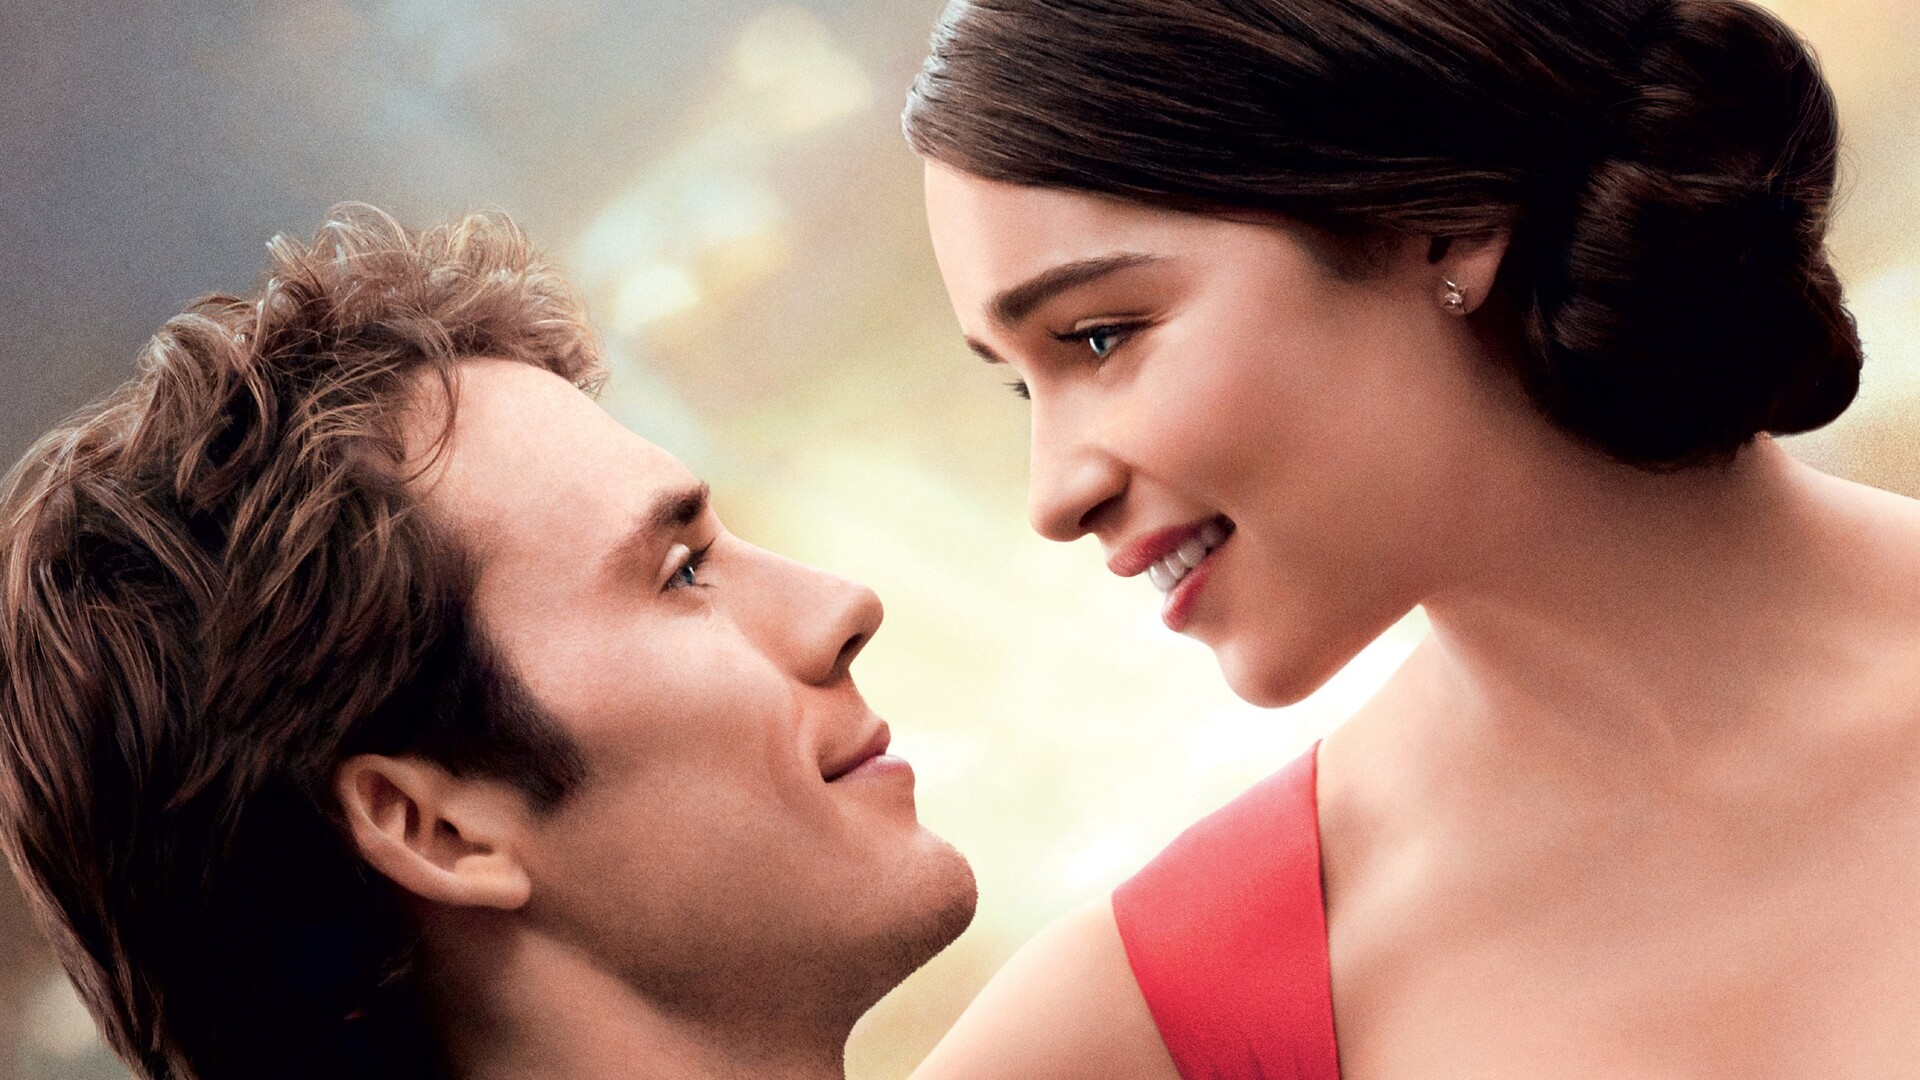 1920x1080 Me Before You Movie Laptop Full Hd 1080p Hd 4k Wallpapers